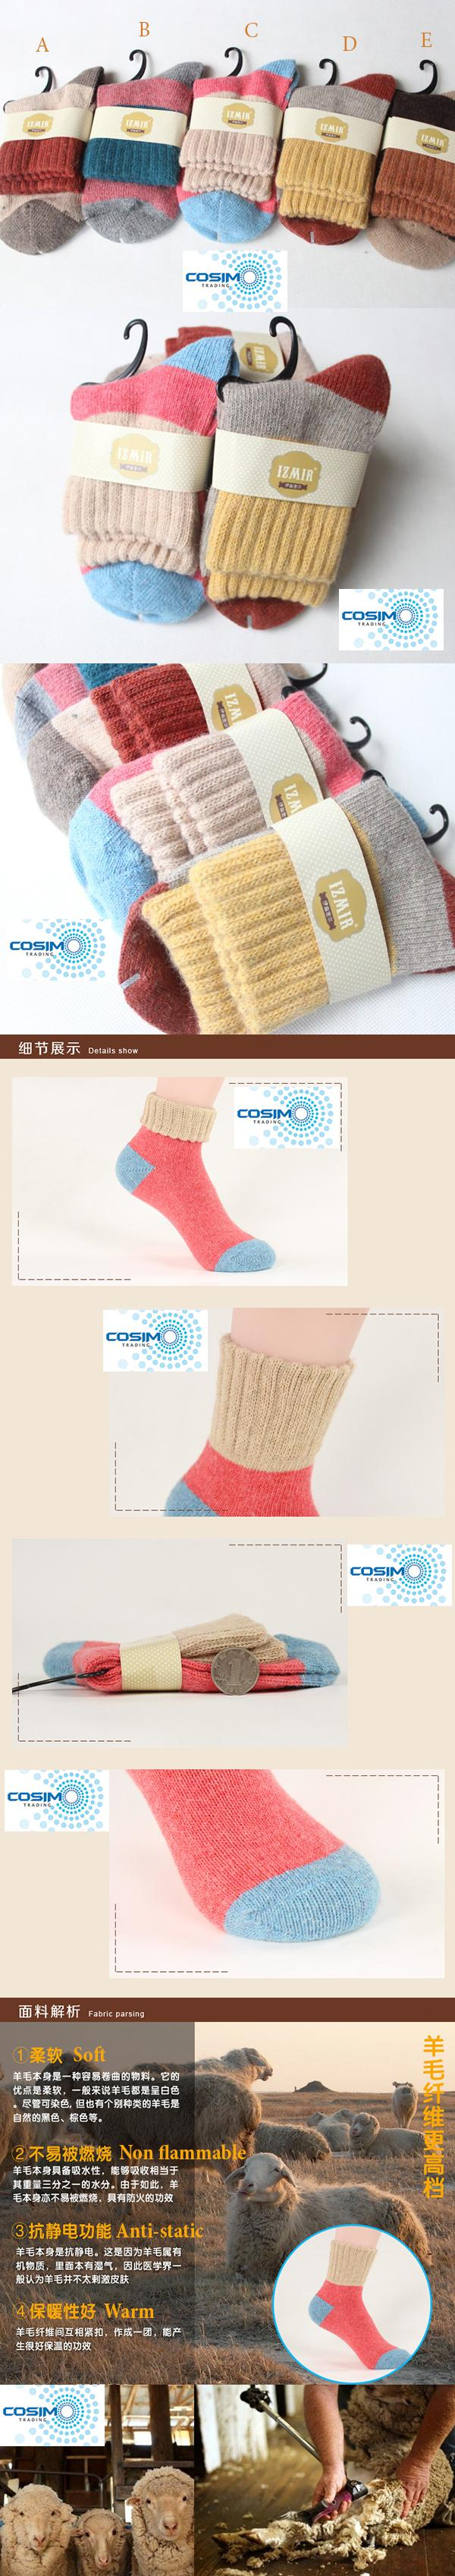 Cosimo Thick Winter Women Socks 2 Pairs Rabbit Wool Socks Sarung Kaki